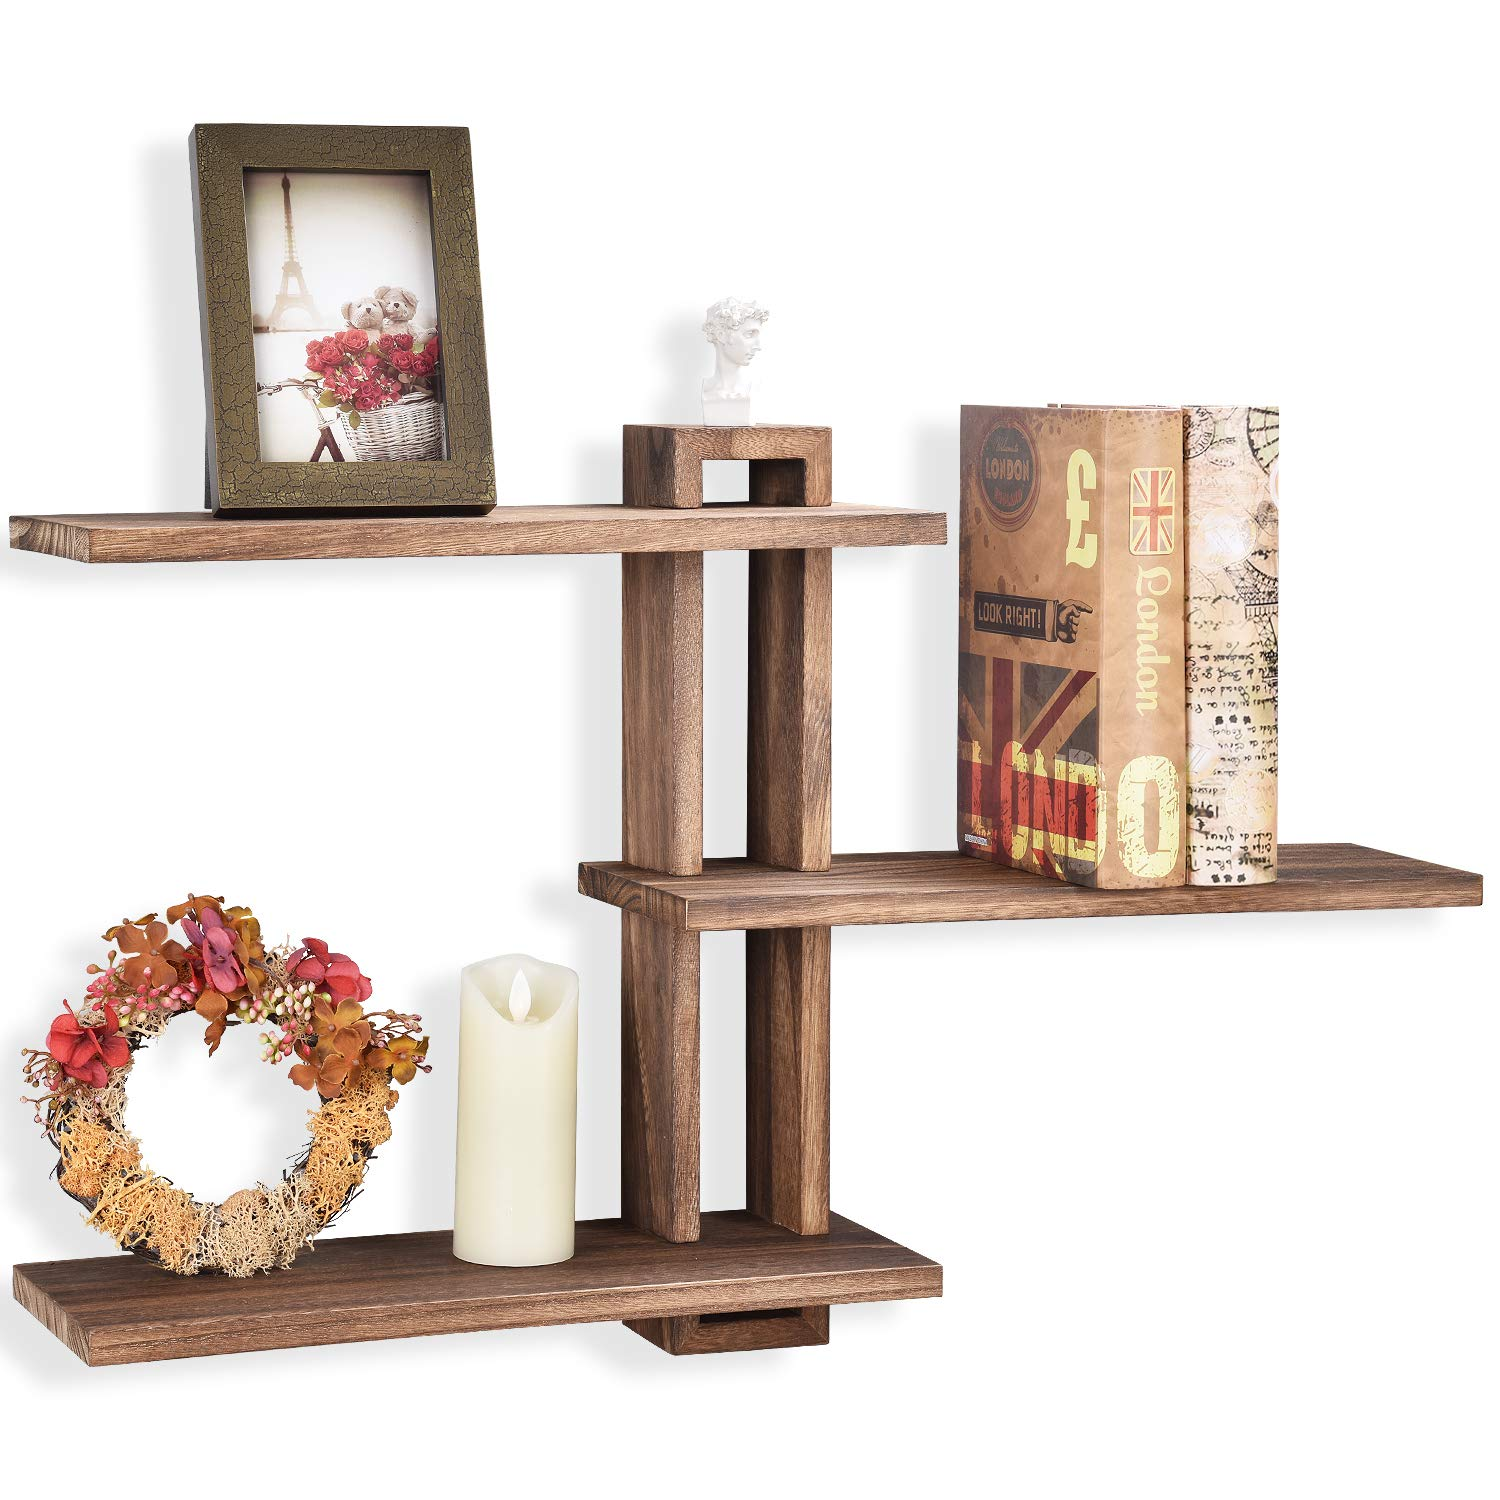 Emfogo Floating Shelves Wall Mounted Rustic Wall Wood Shelves 3 Tier for Decor and Storage at Bedroom Living Room Office